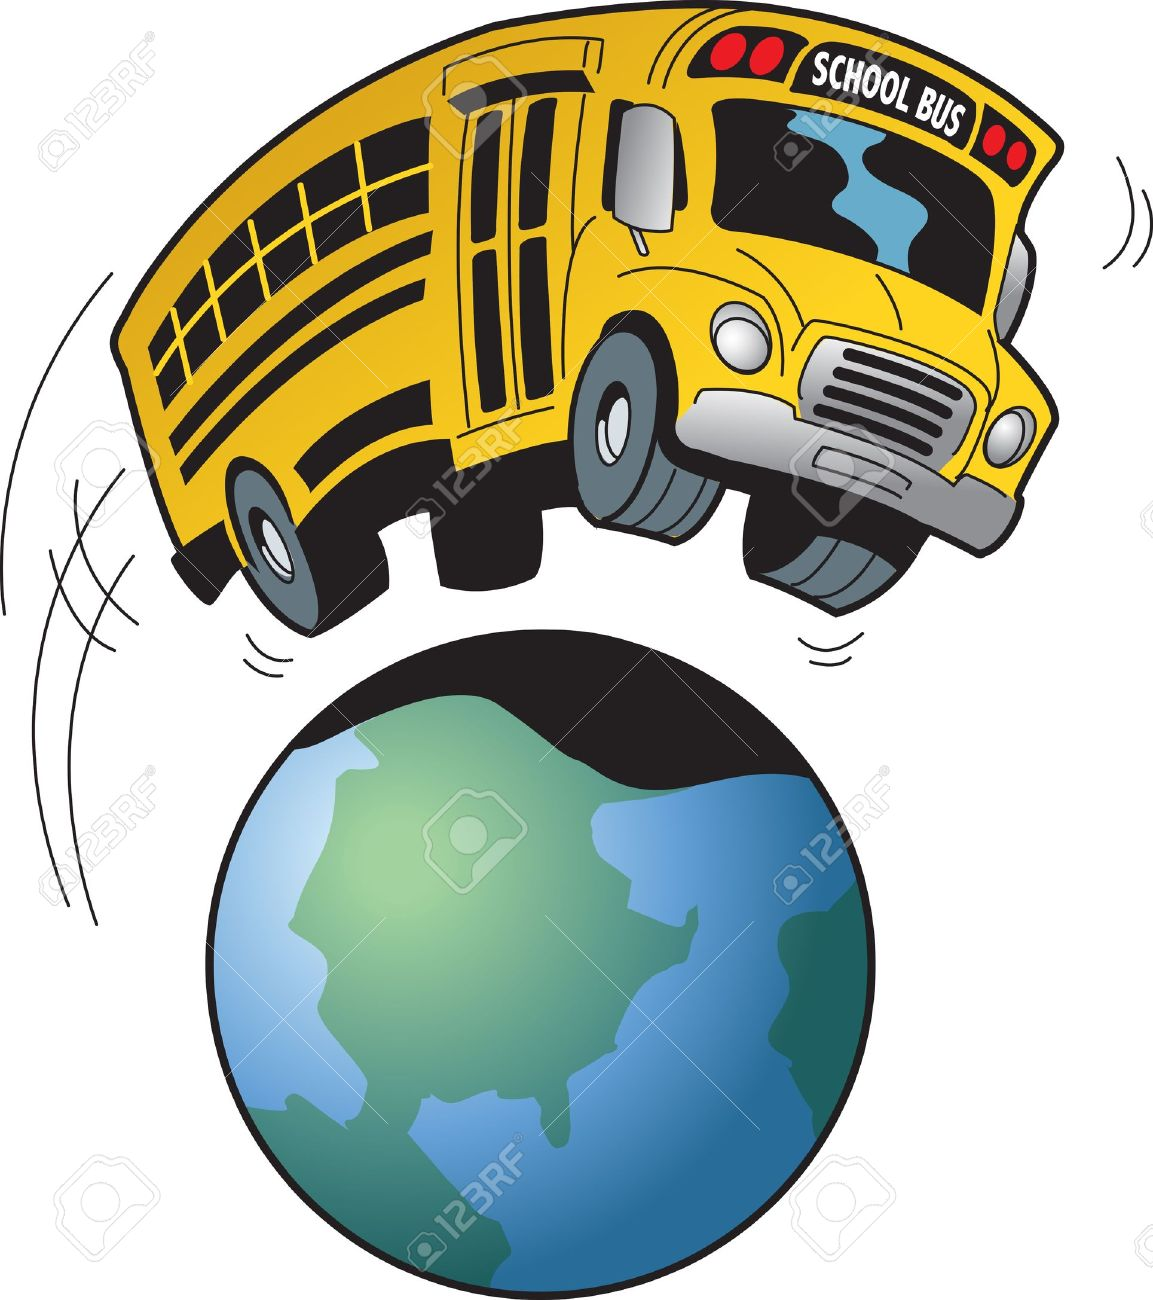 cartoon of a school bus going on a field trip to anywhere in rh 123rf com field trip clip art images field trip border clip art